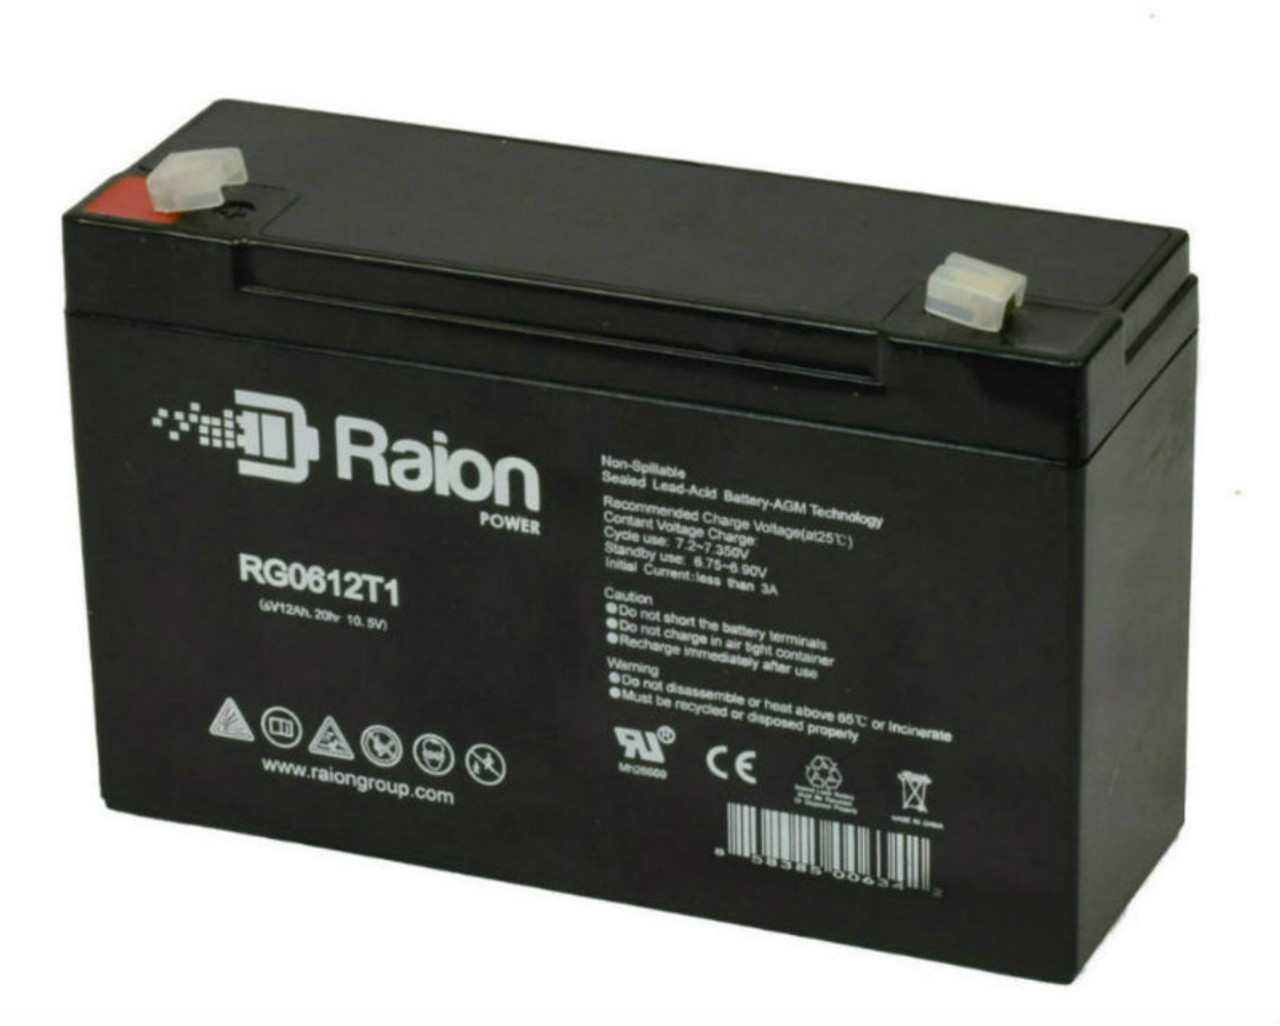 Raion Power RG06120T1 Replacement Battery Pack for Sure-Lites XR6C emergency light